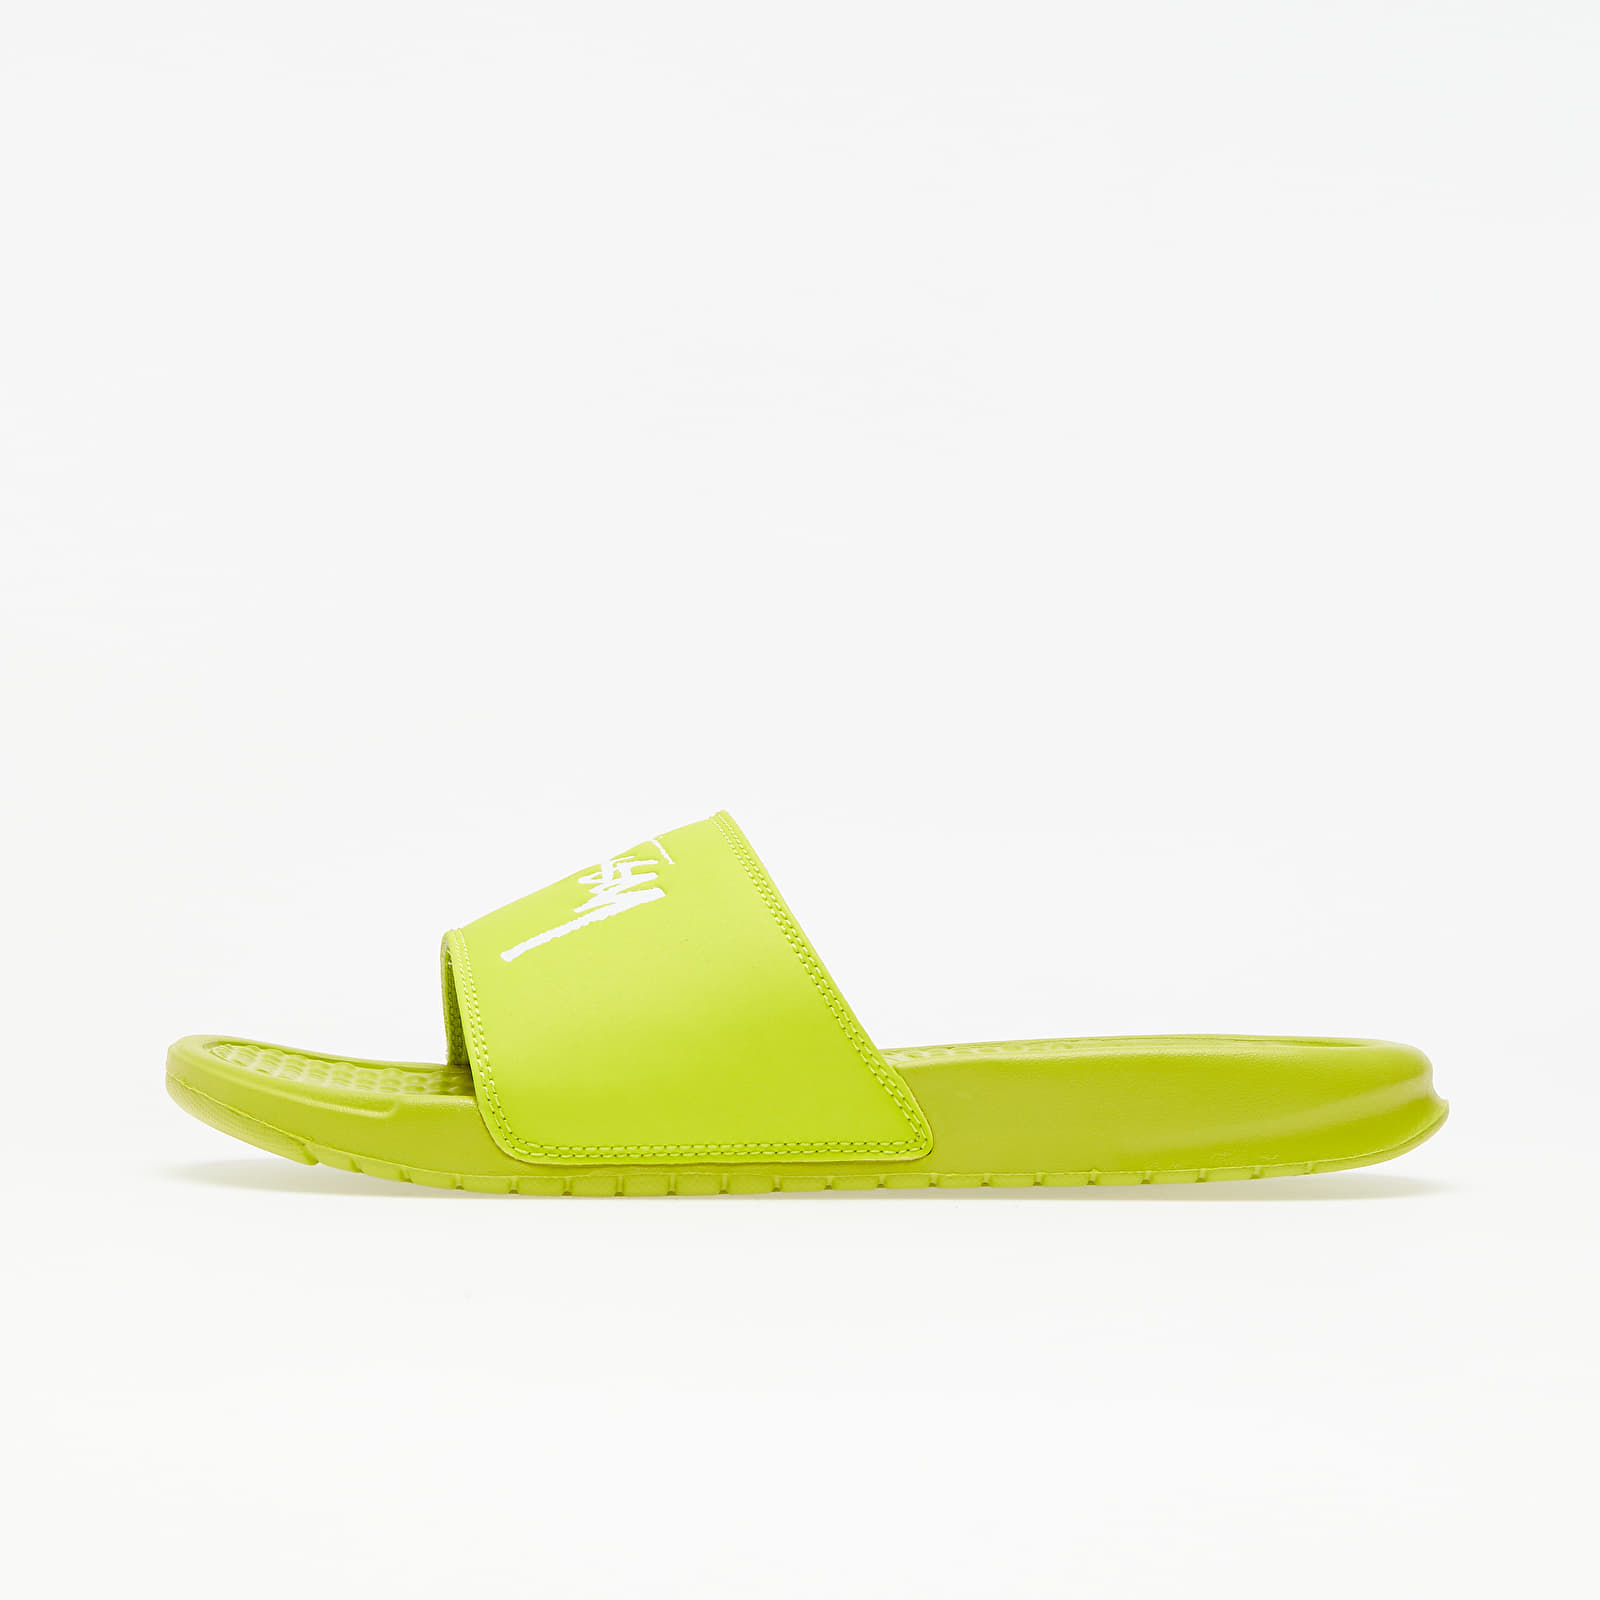 Men's shoes Nike x Stüssy Benassi Bright Cactus/ White